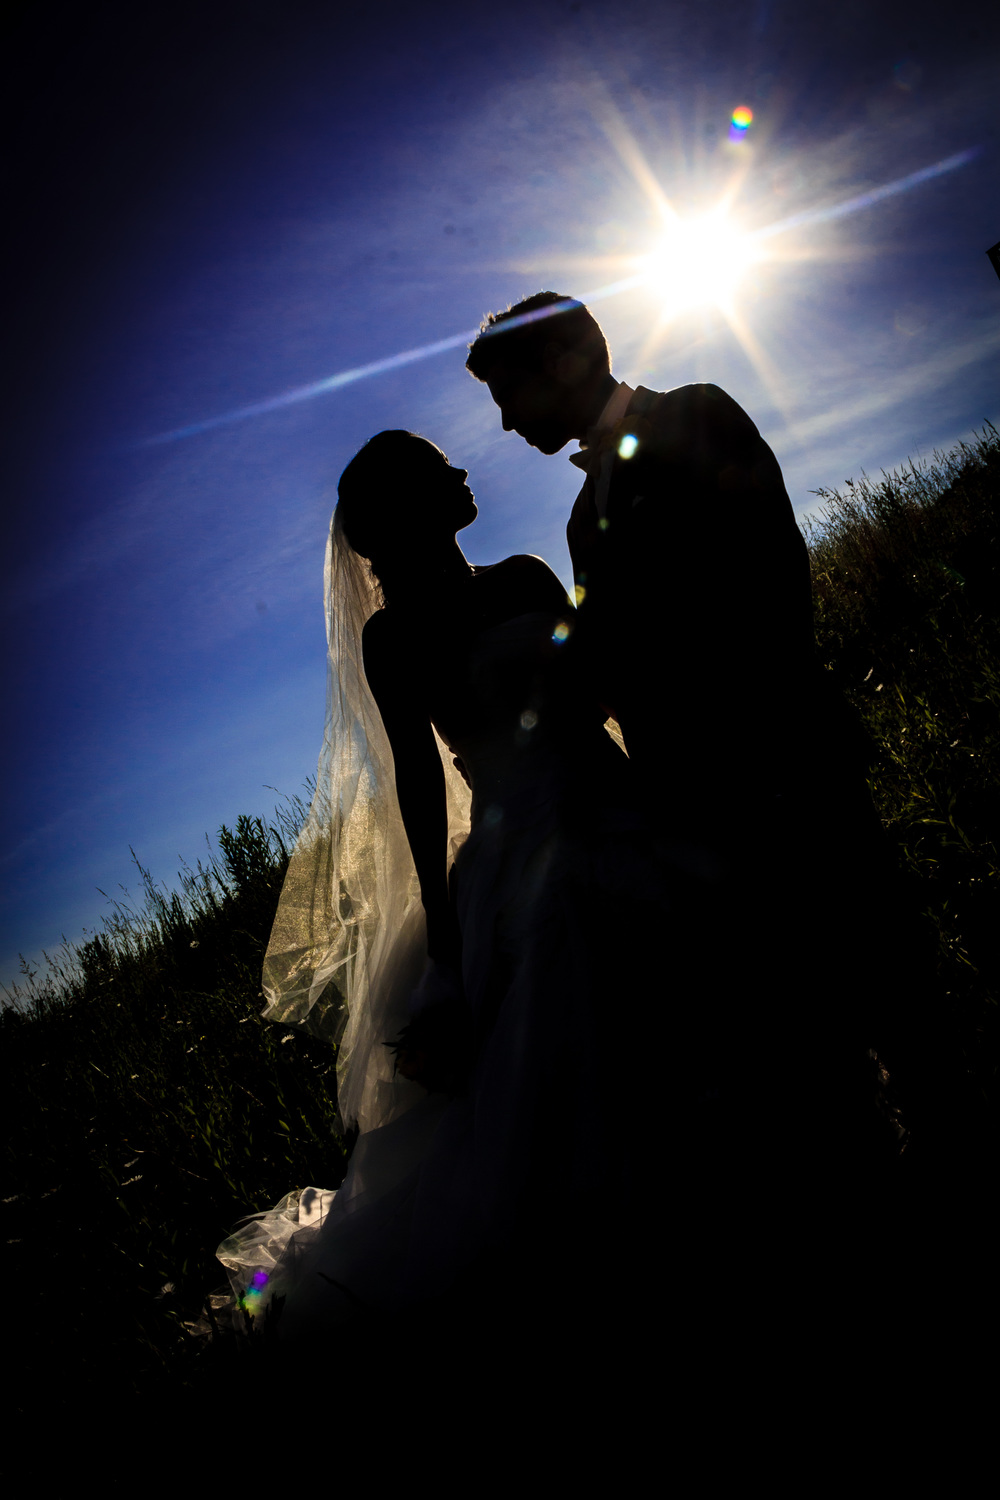 silhouette-photography-wedding.jpg